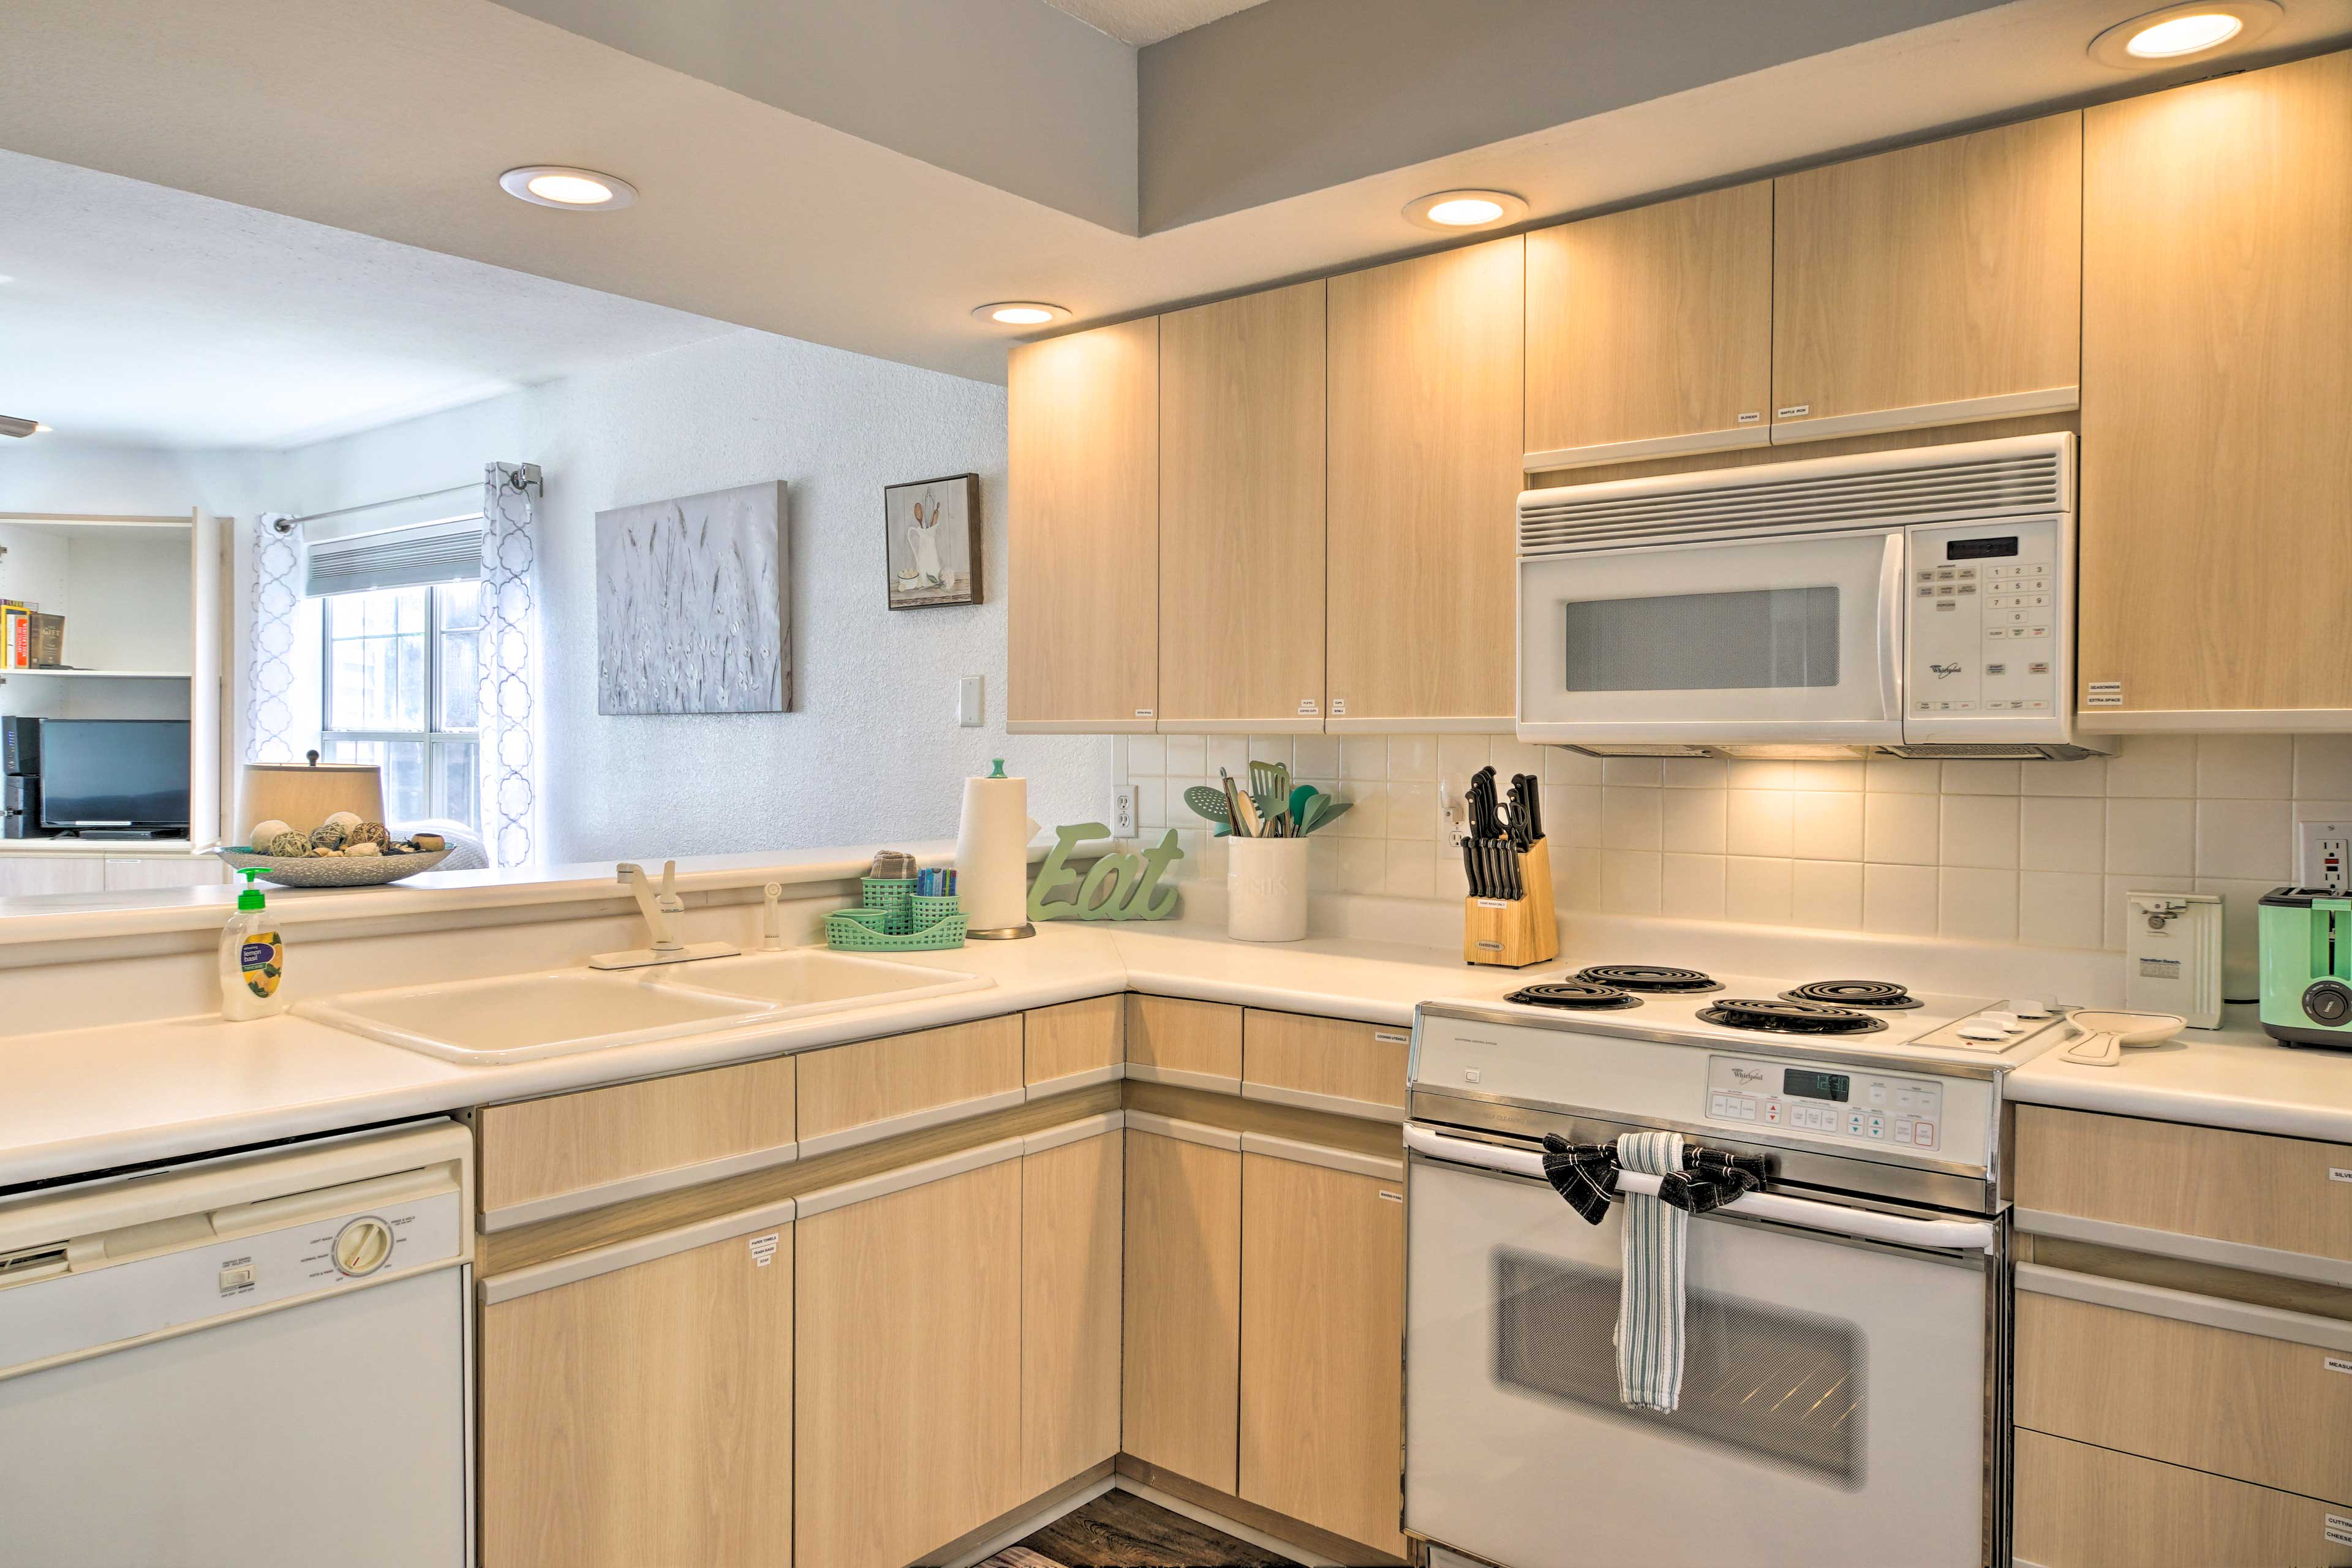 Kitchen | Fully Equipped | Cooking Basics | Toaster